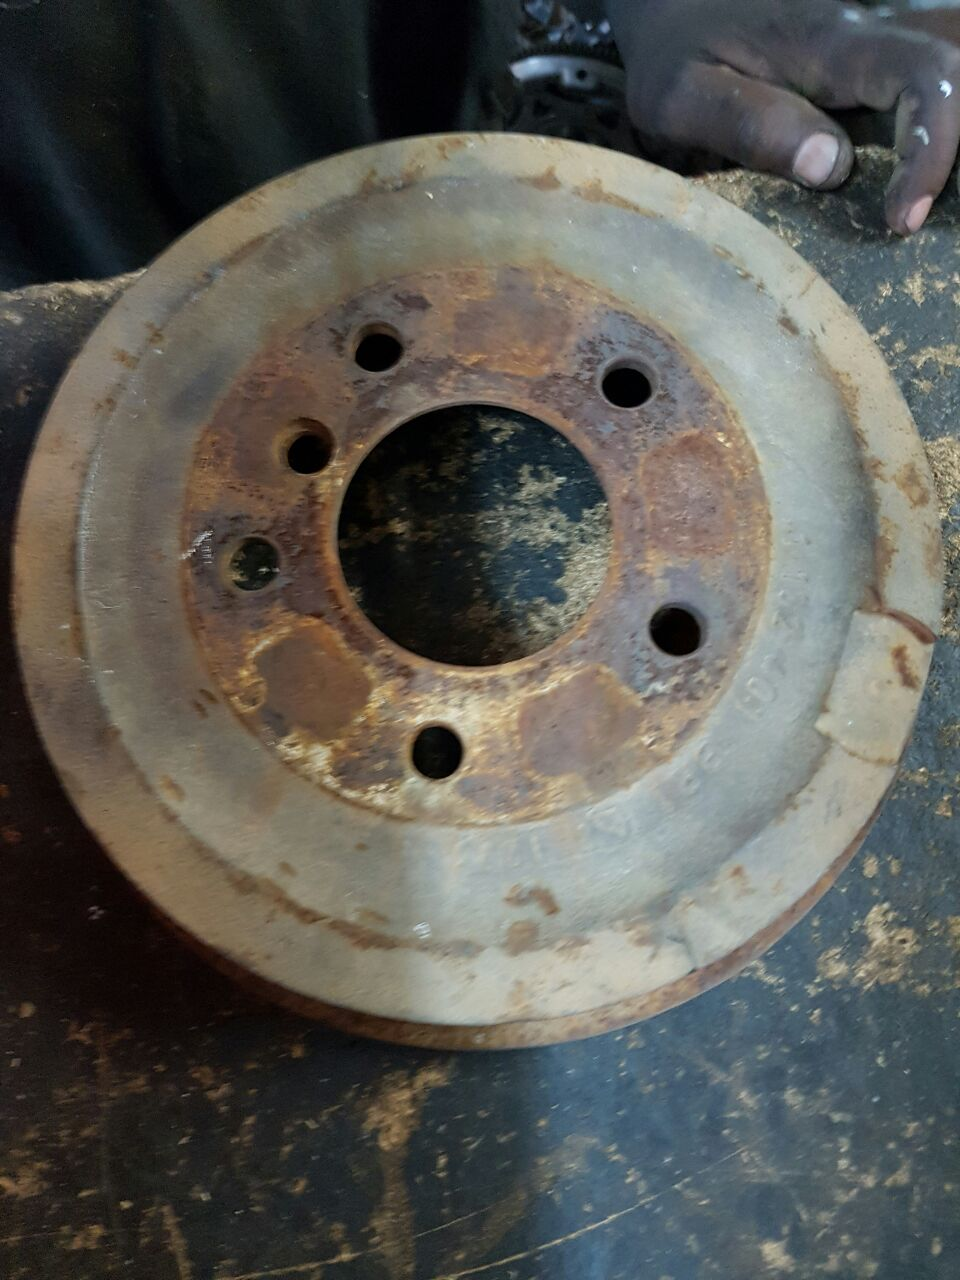 Me e36 316 Rear brake drums